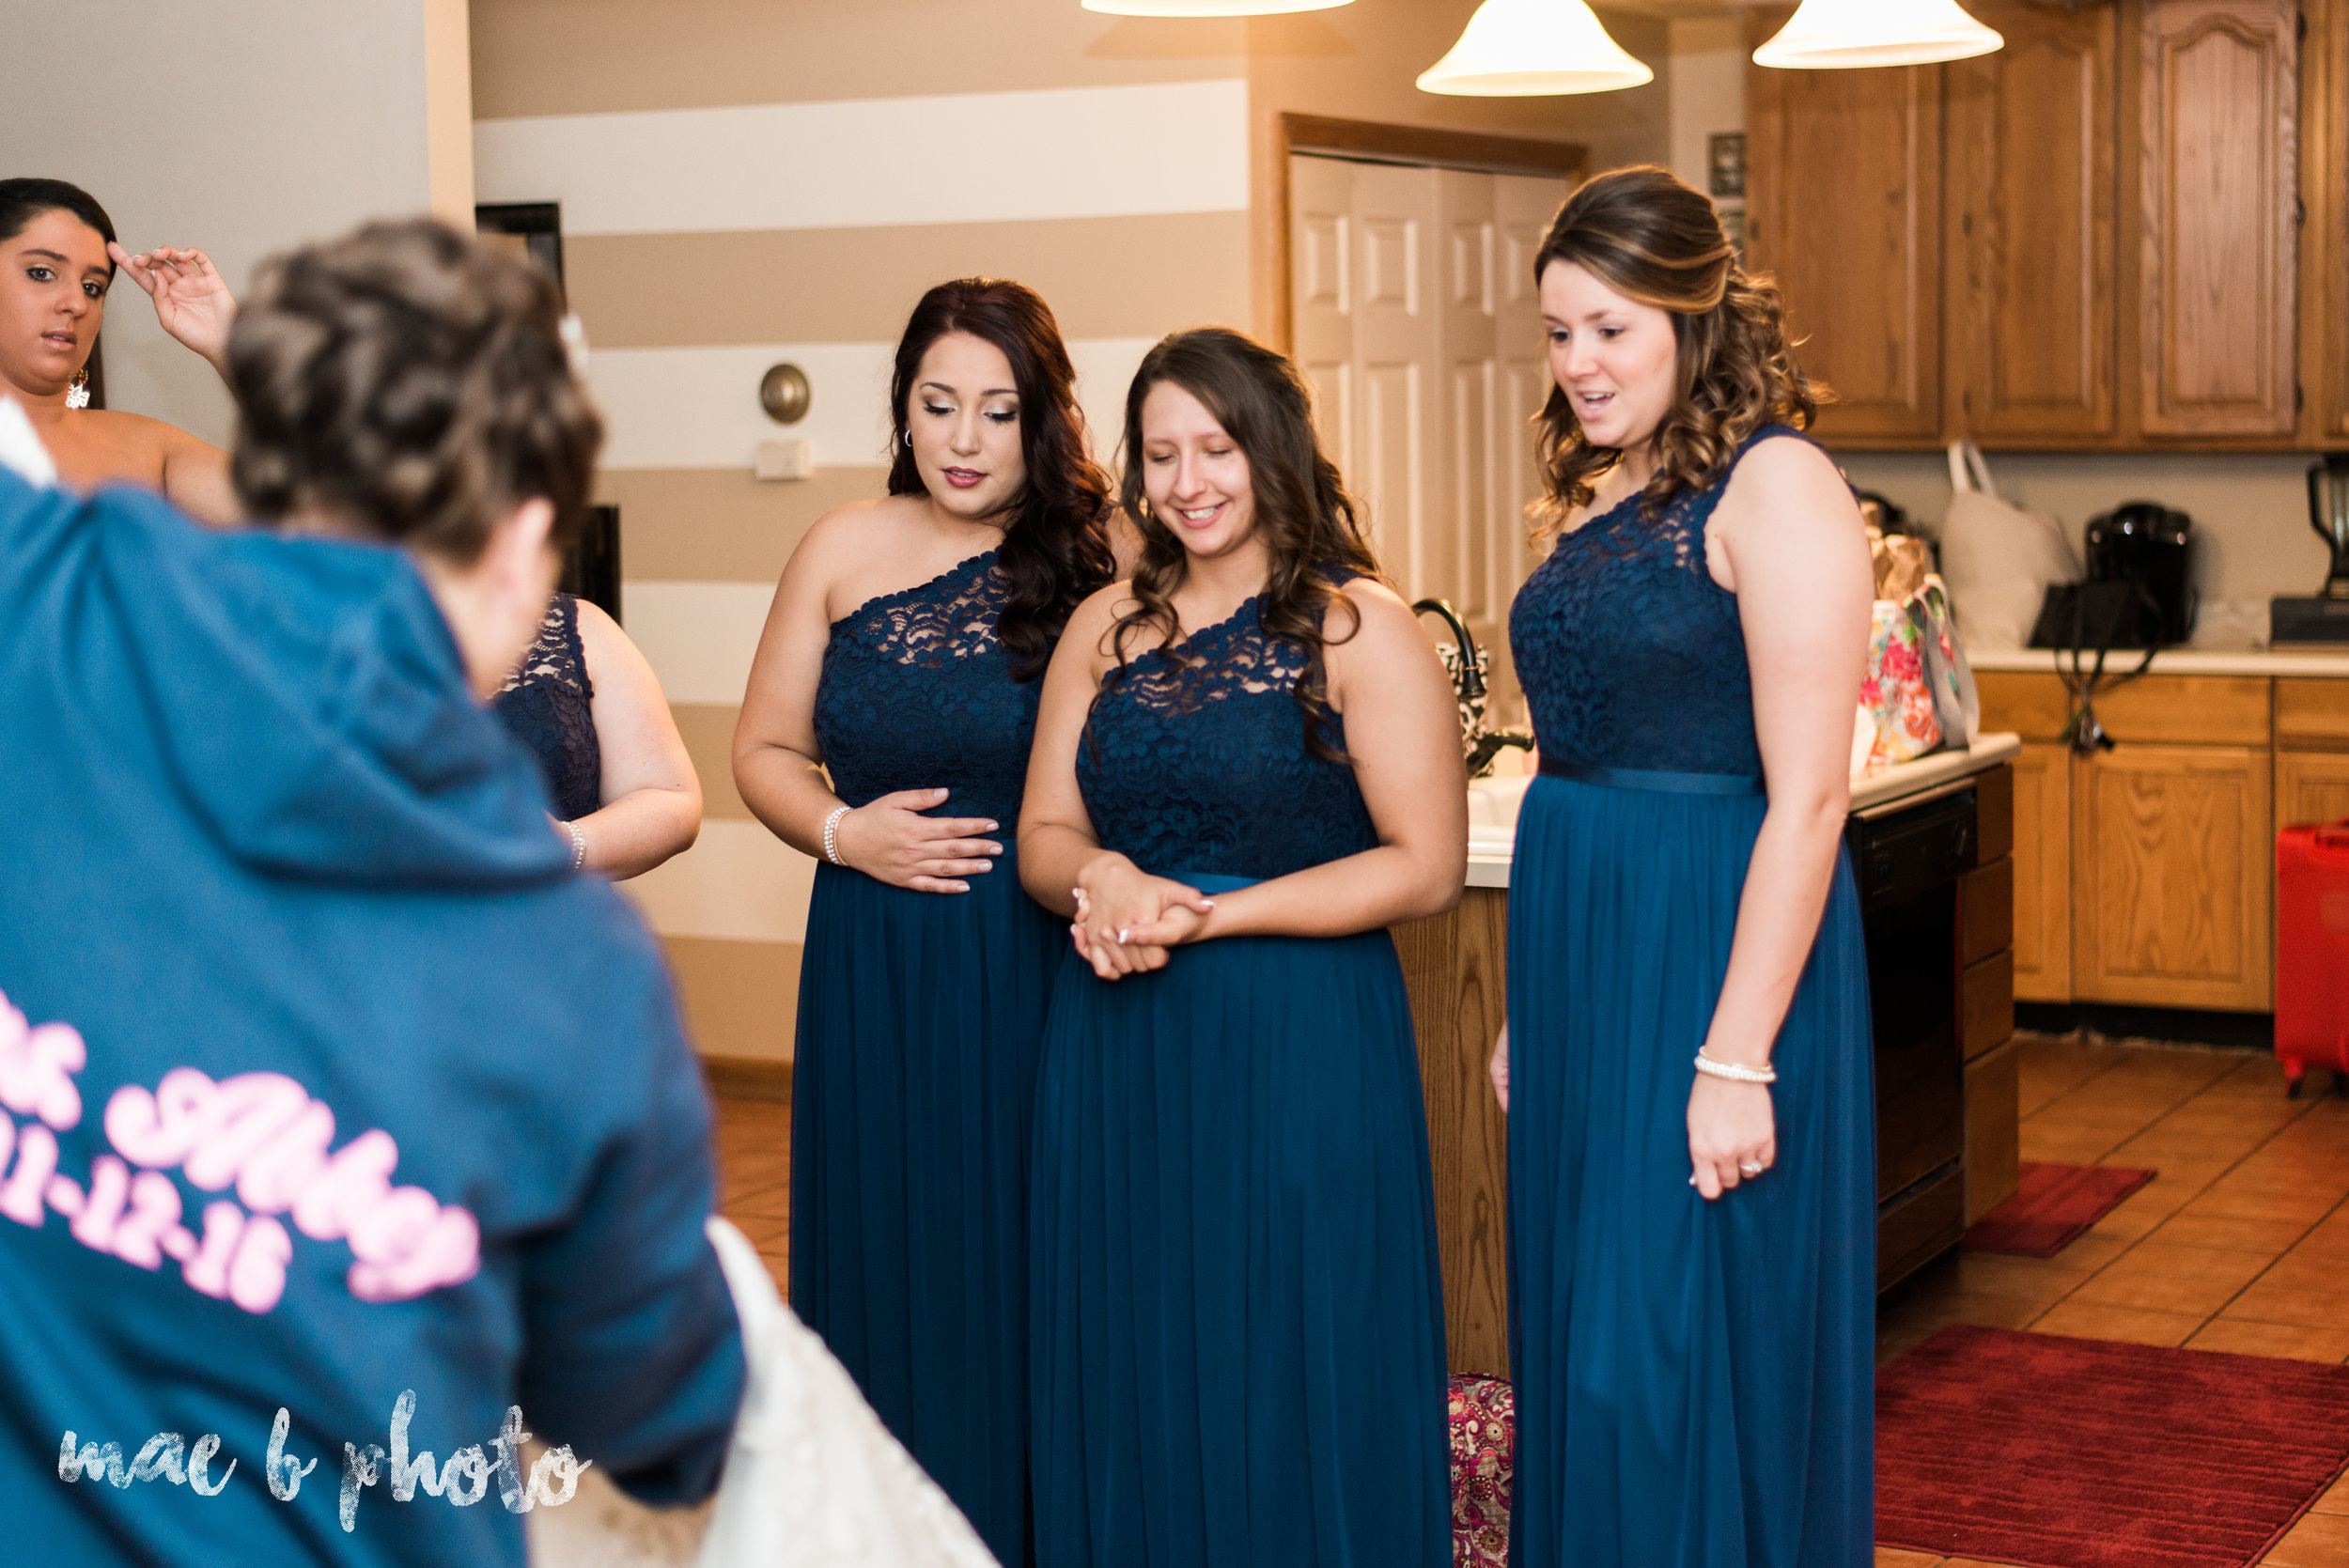 kaylynn & matt's fall zoo wedding at the cleveland metroparks zoo in cleveland ohio photographed by mae b photo-17.jpg